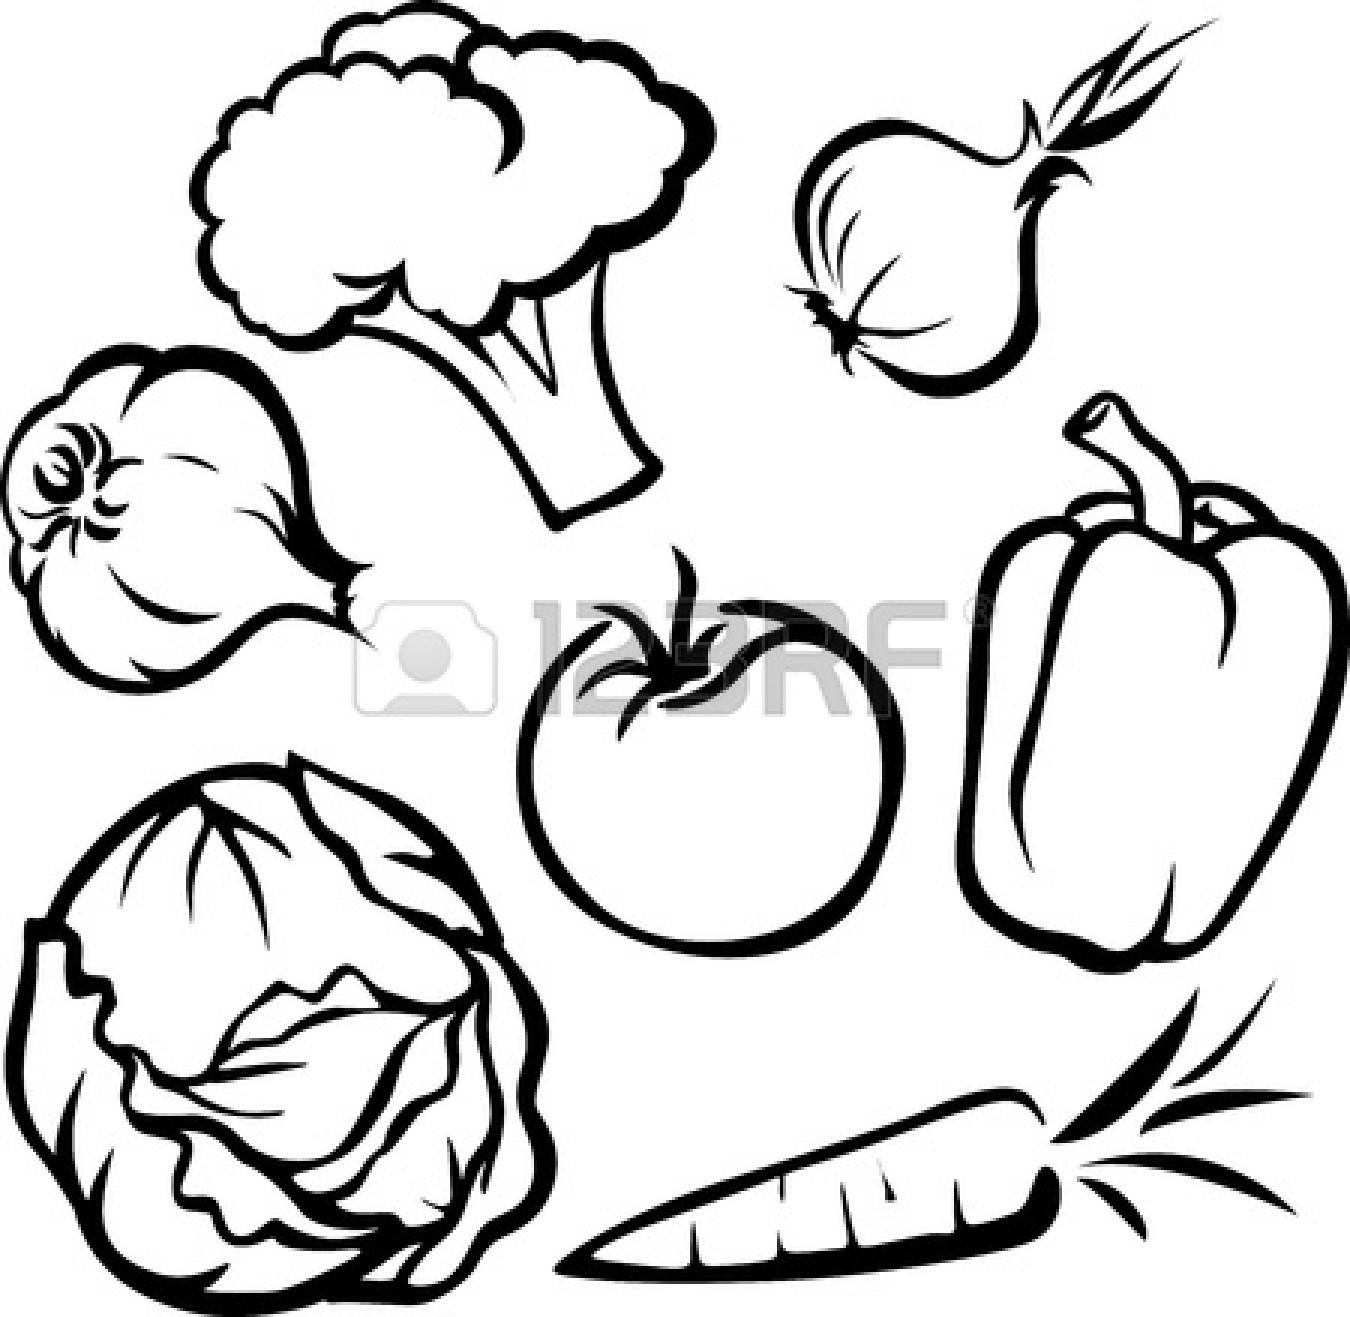 1350x1317 Vegetable Drawings Clip Art